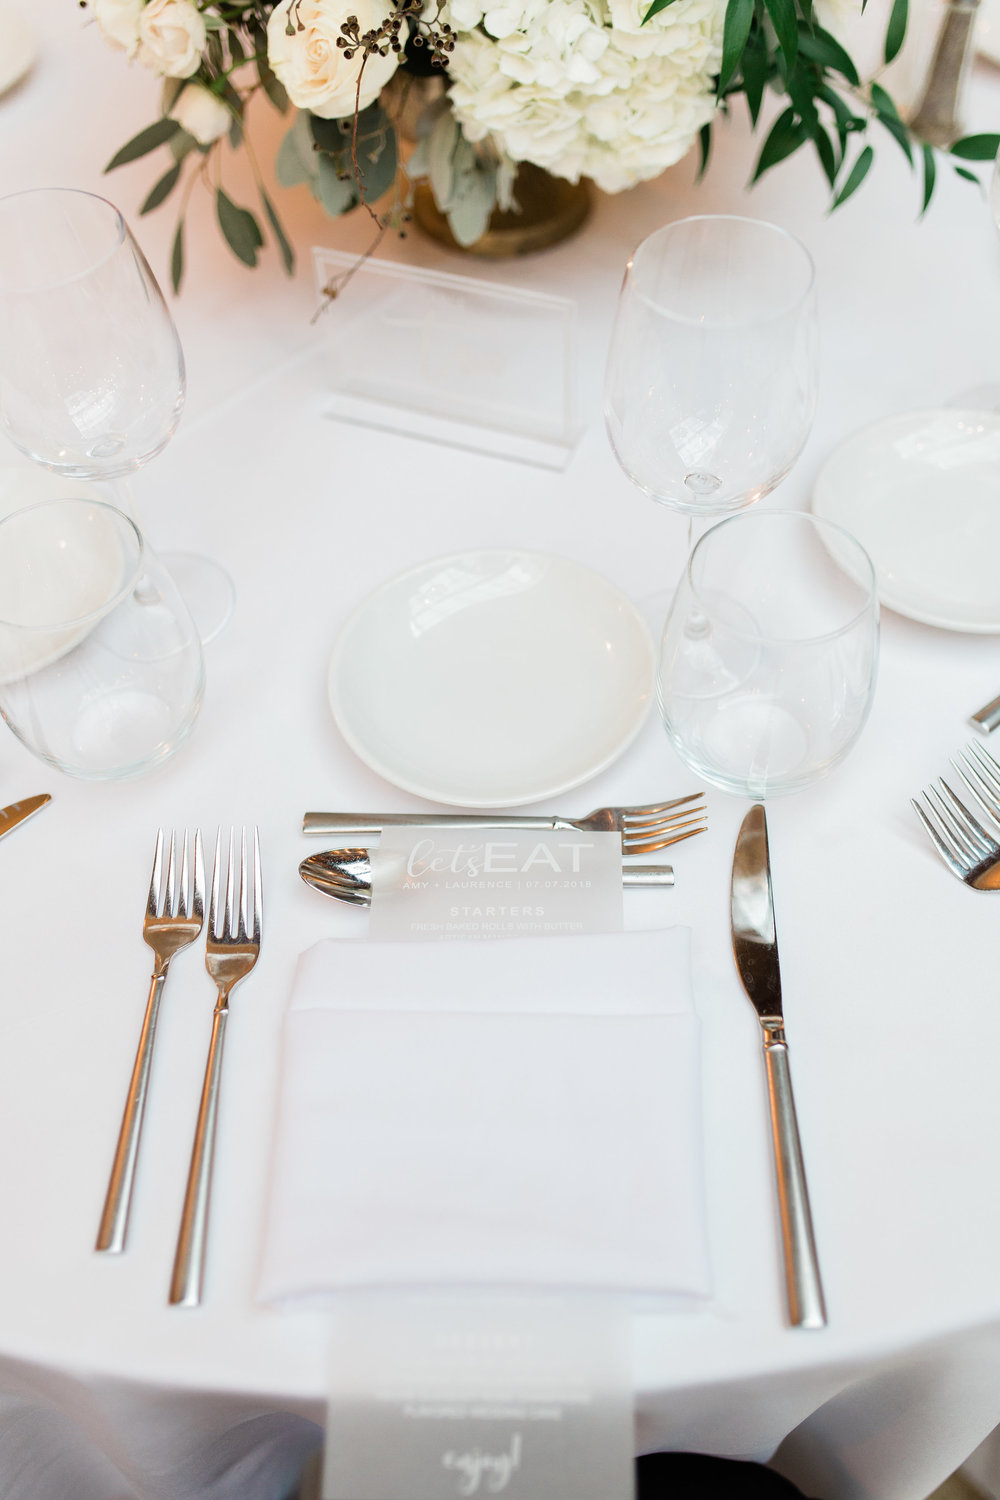 Vellum and White Menus, Palm Beach Wedding Planning by Fleeting Elegance